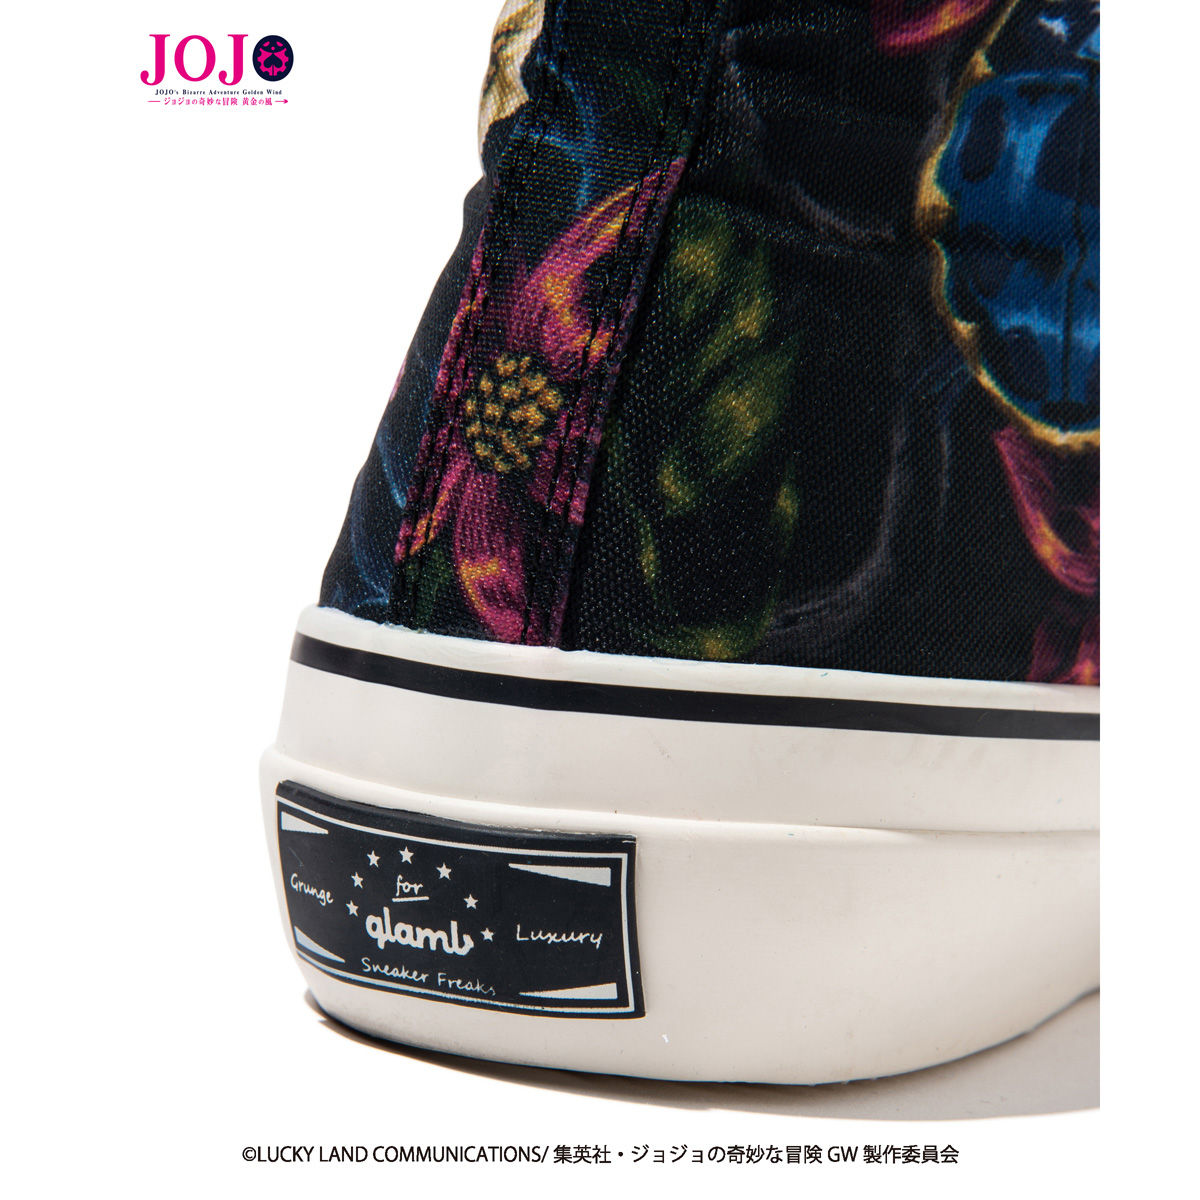 JoJo's Bizarre Adventure: Golden Wind  × glamb  collaboration Sneakers